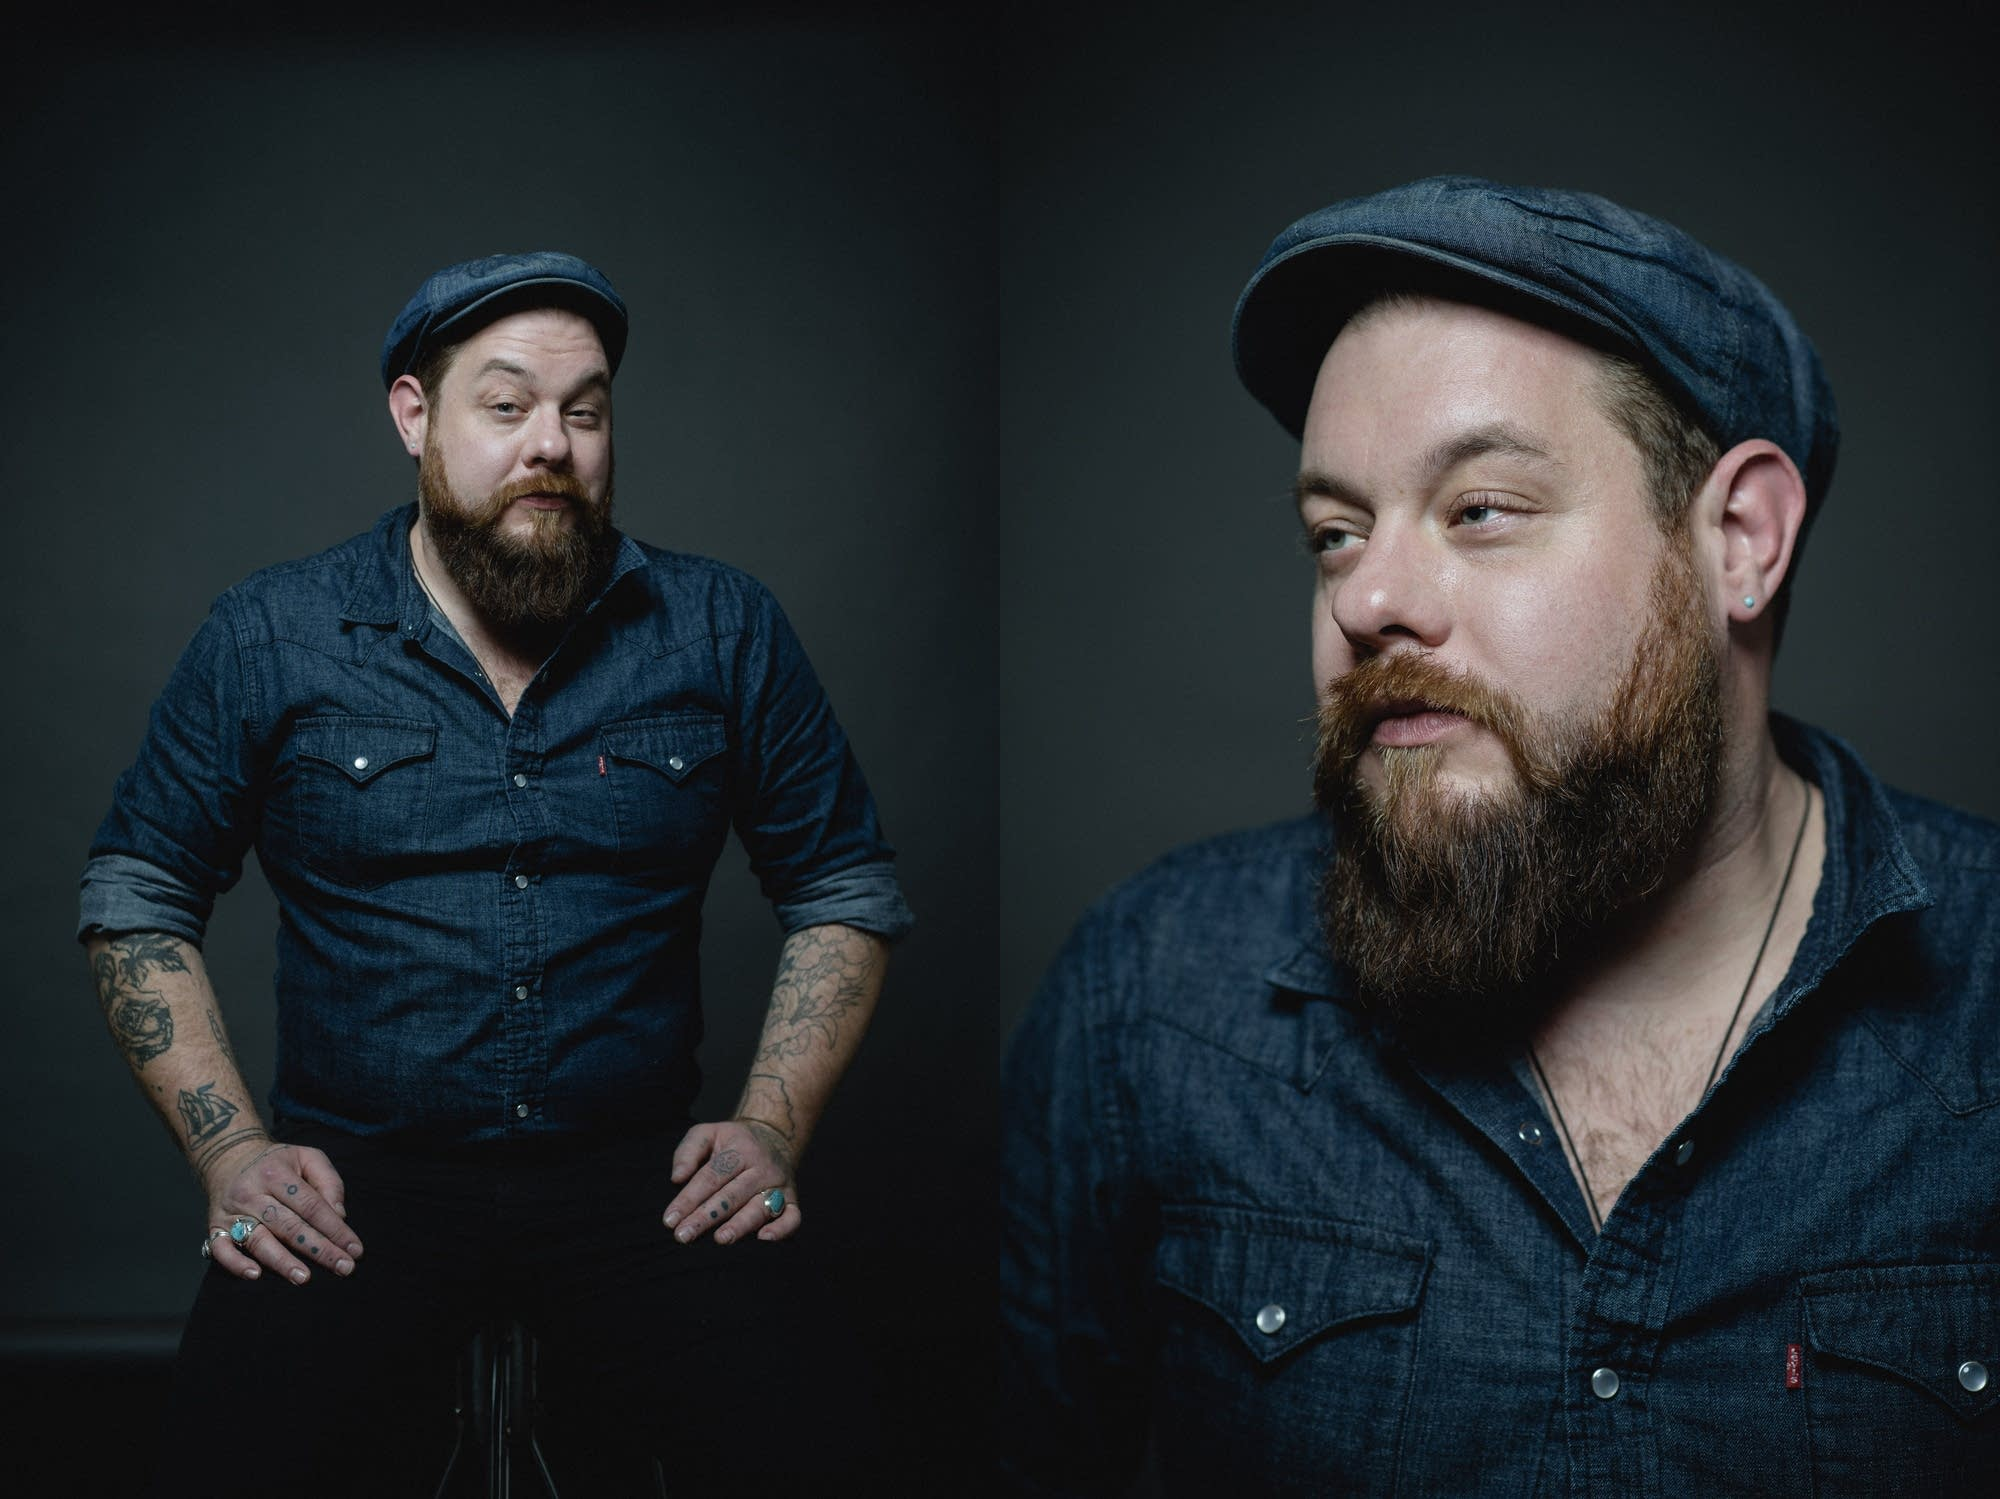 Nathaniel Rateliff and the Night Sweats perform in The Current